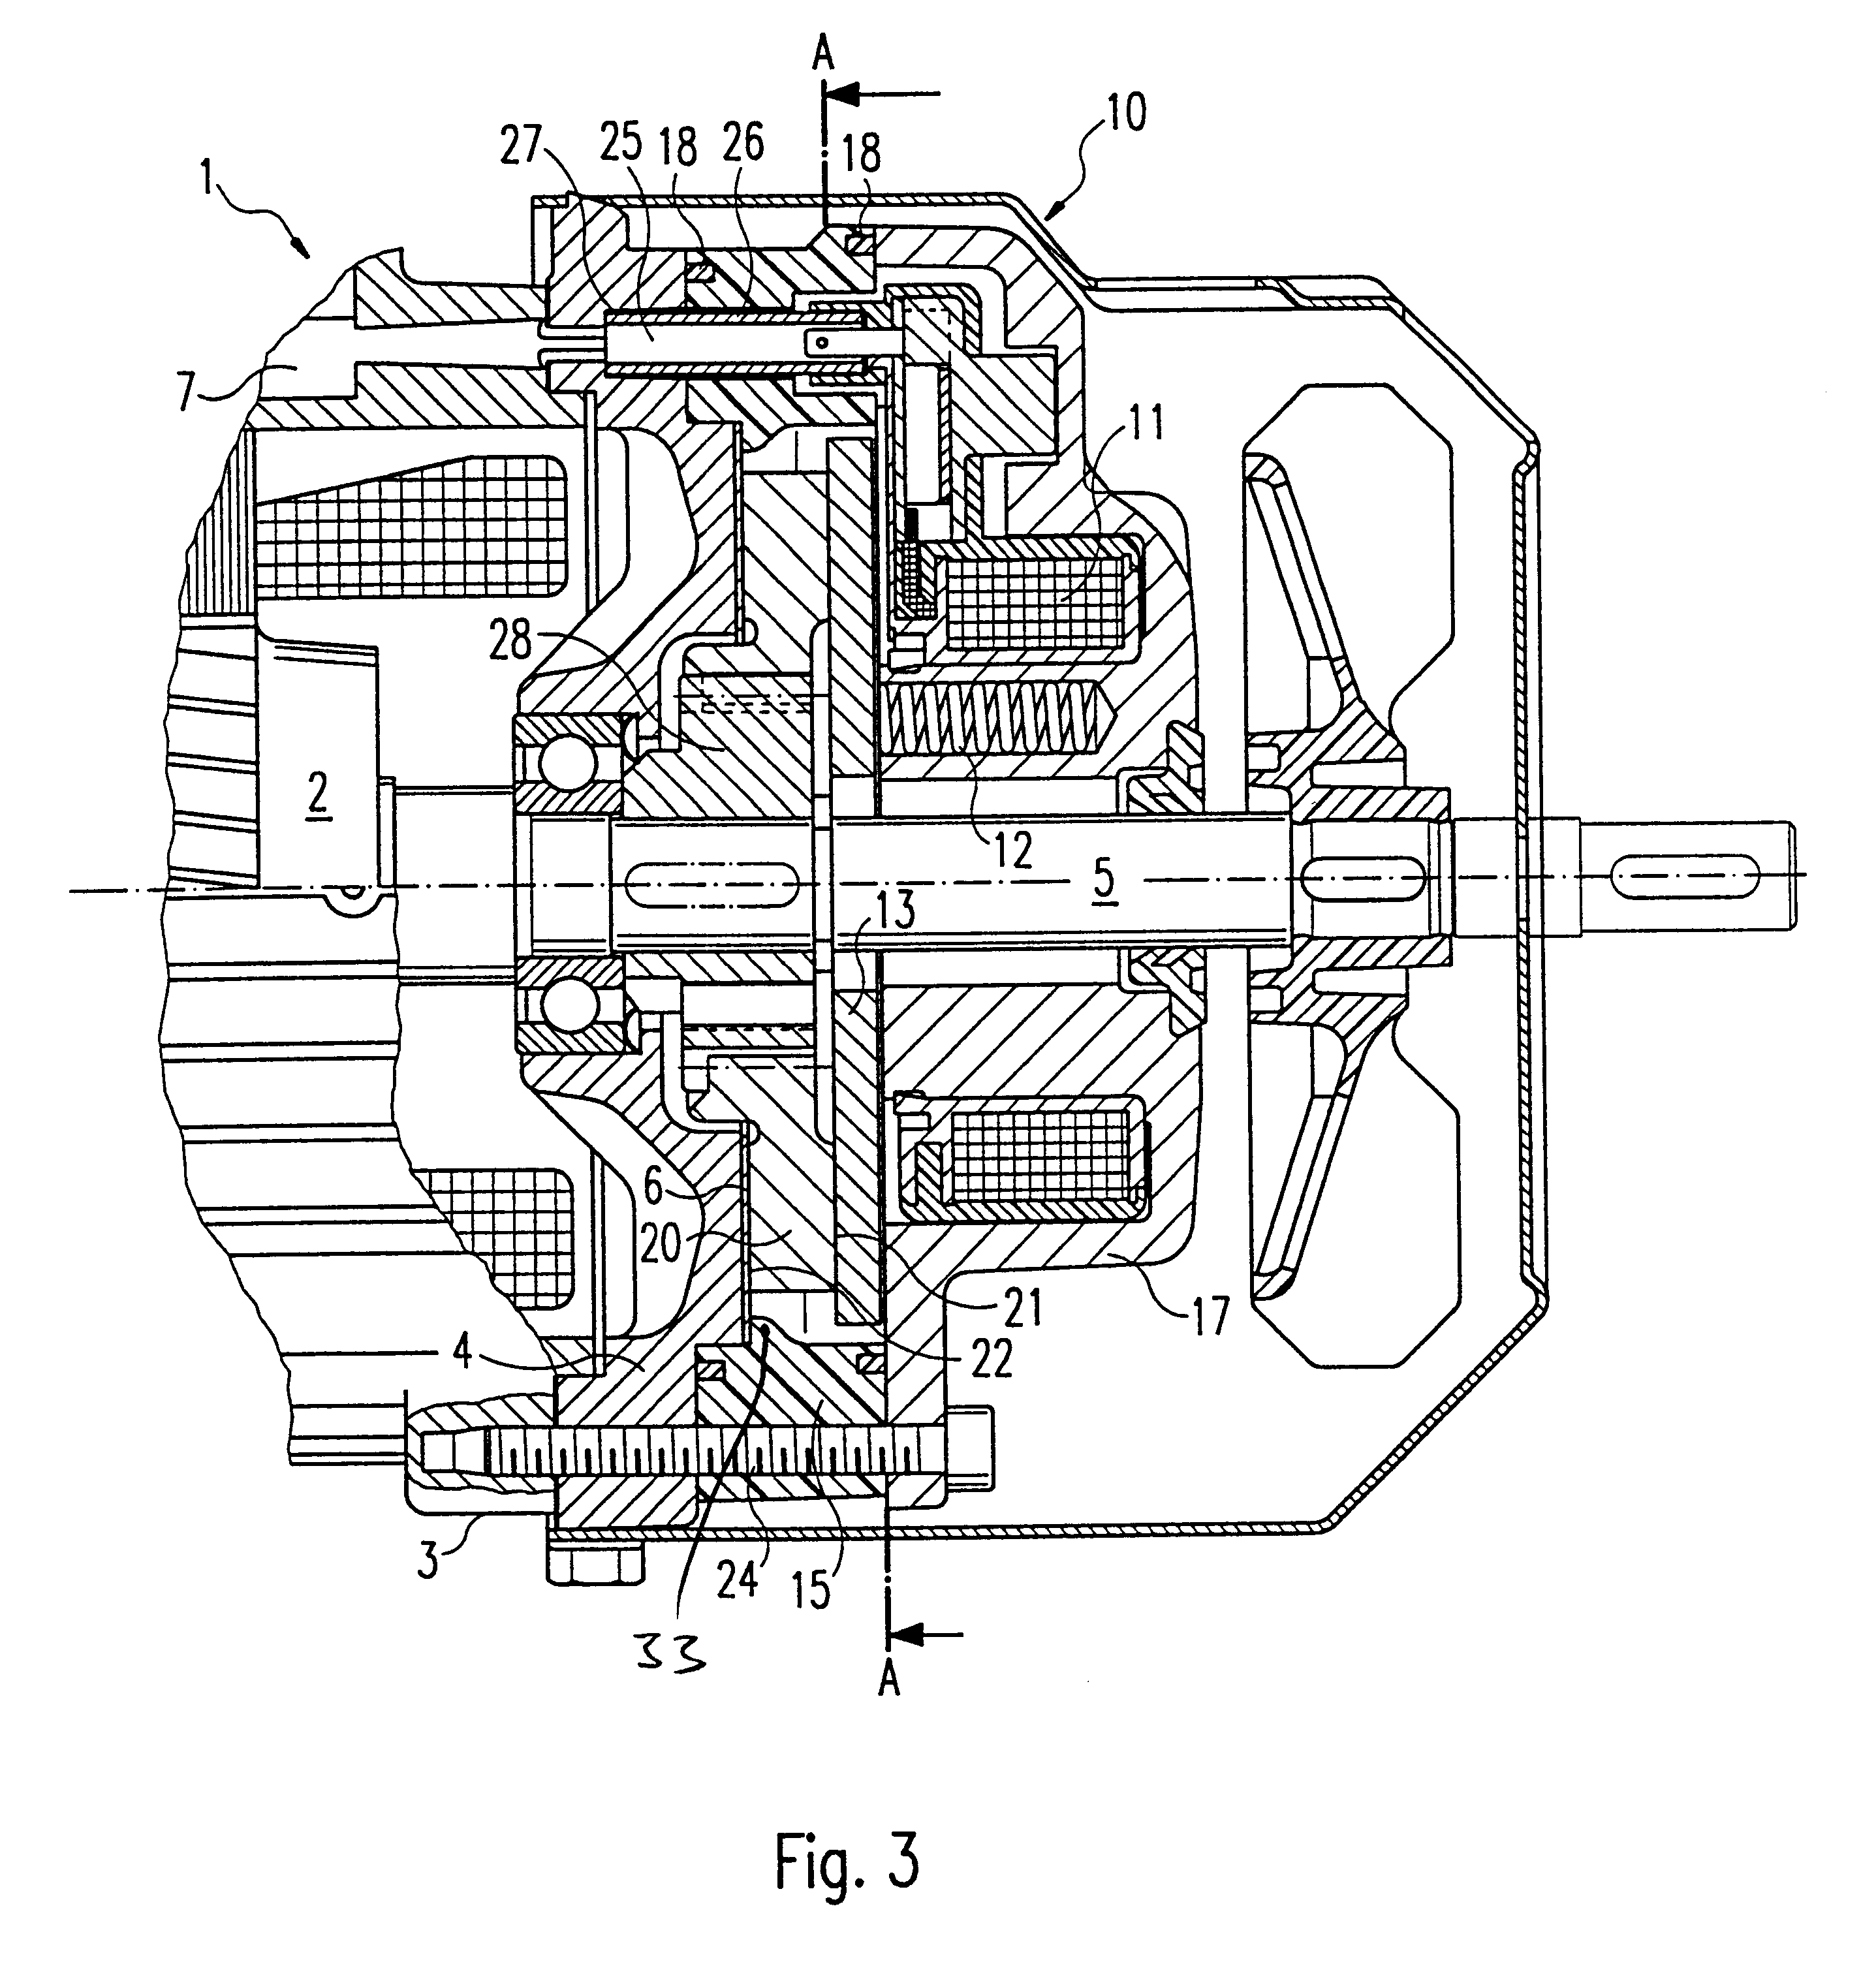 Sew Electric Motor Brake Adjustment furthermore John Deere L130 Drive Belt Diagram moreover Sew Eurodrive Wiring Diagrams also Baldor Single Phase Motor Wiring Diagrams together with Bill of materials. on sew eurodrive brake motor